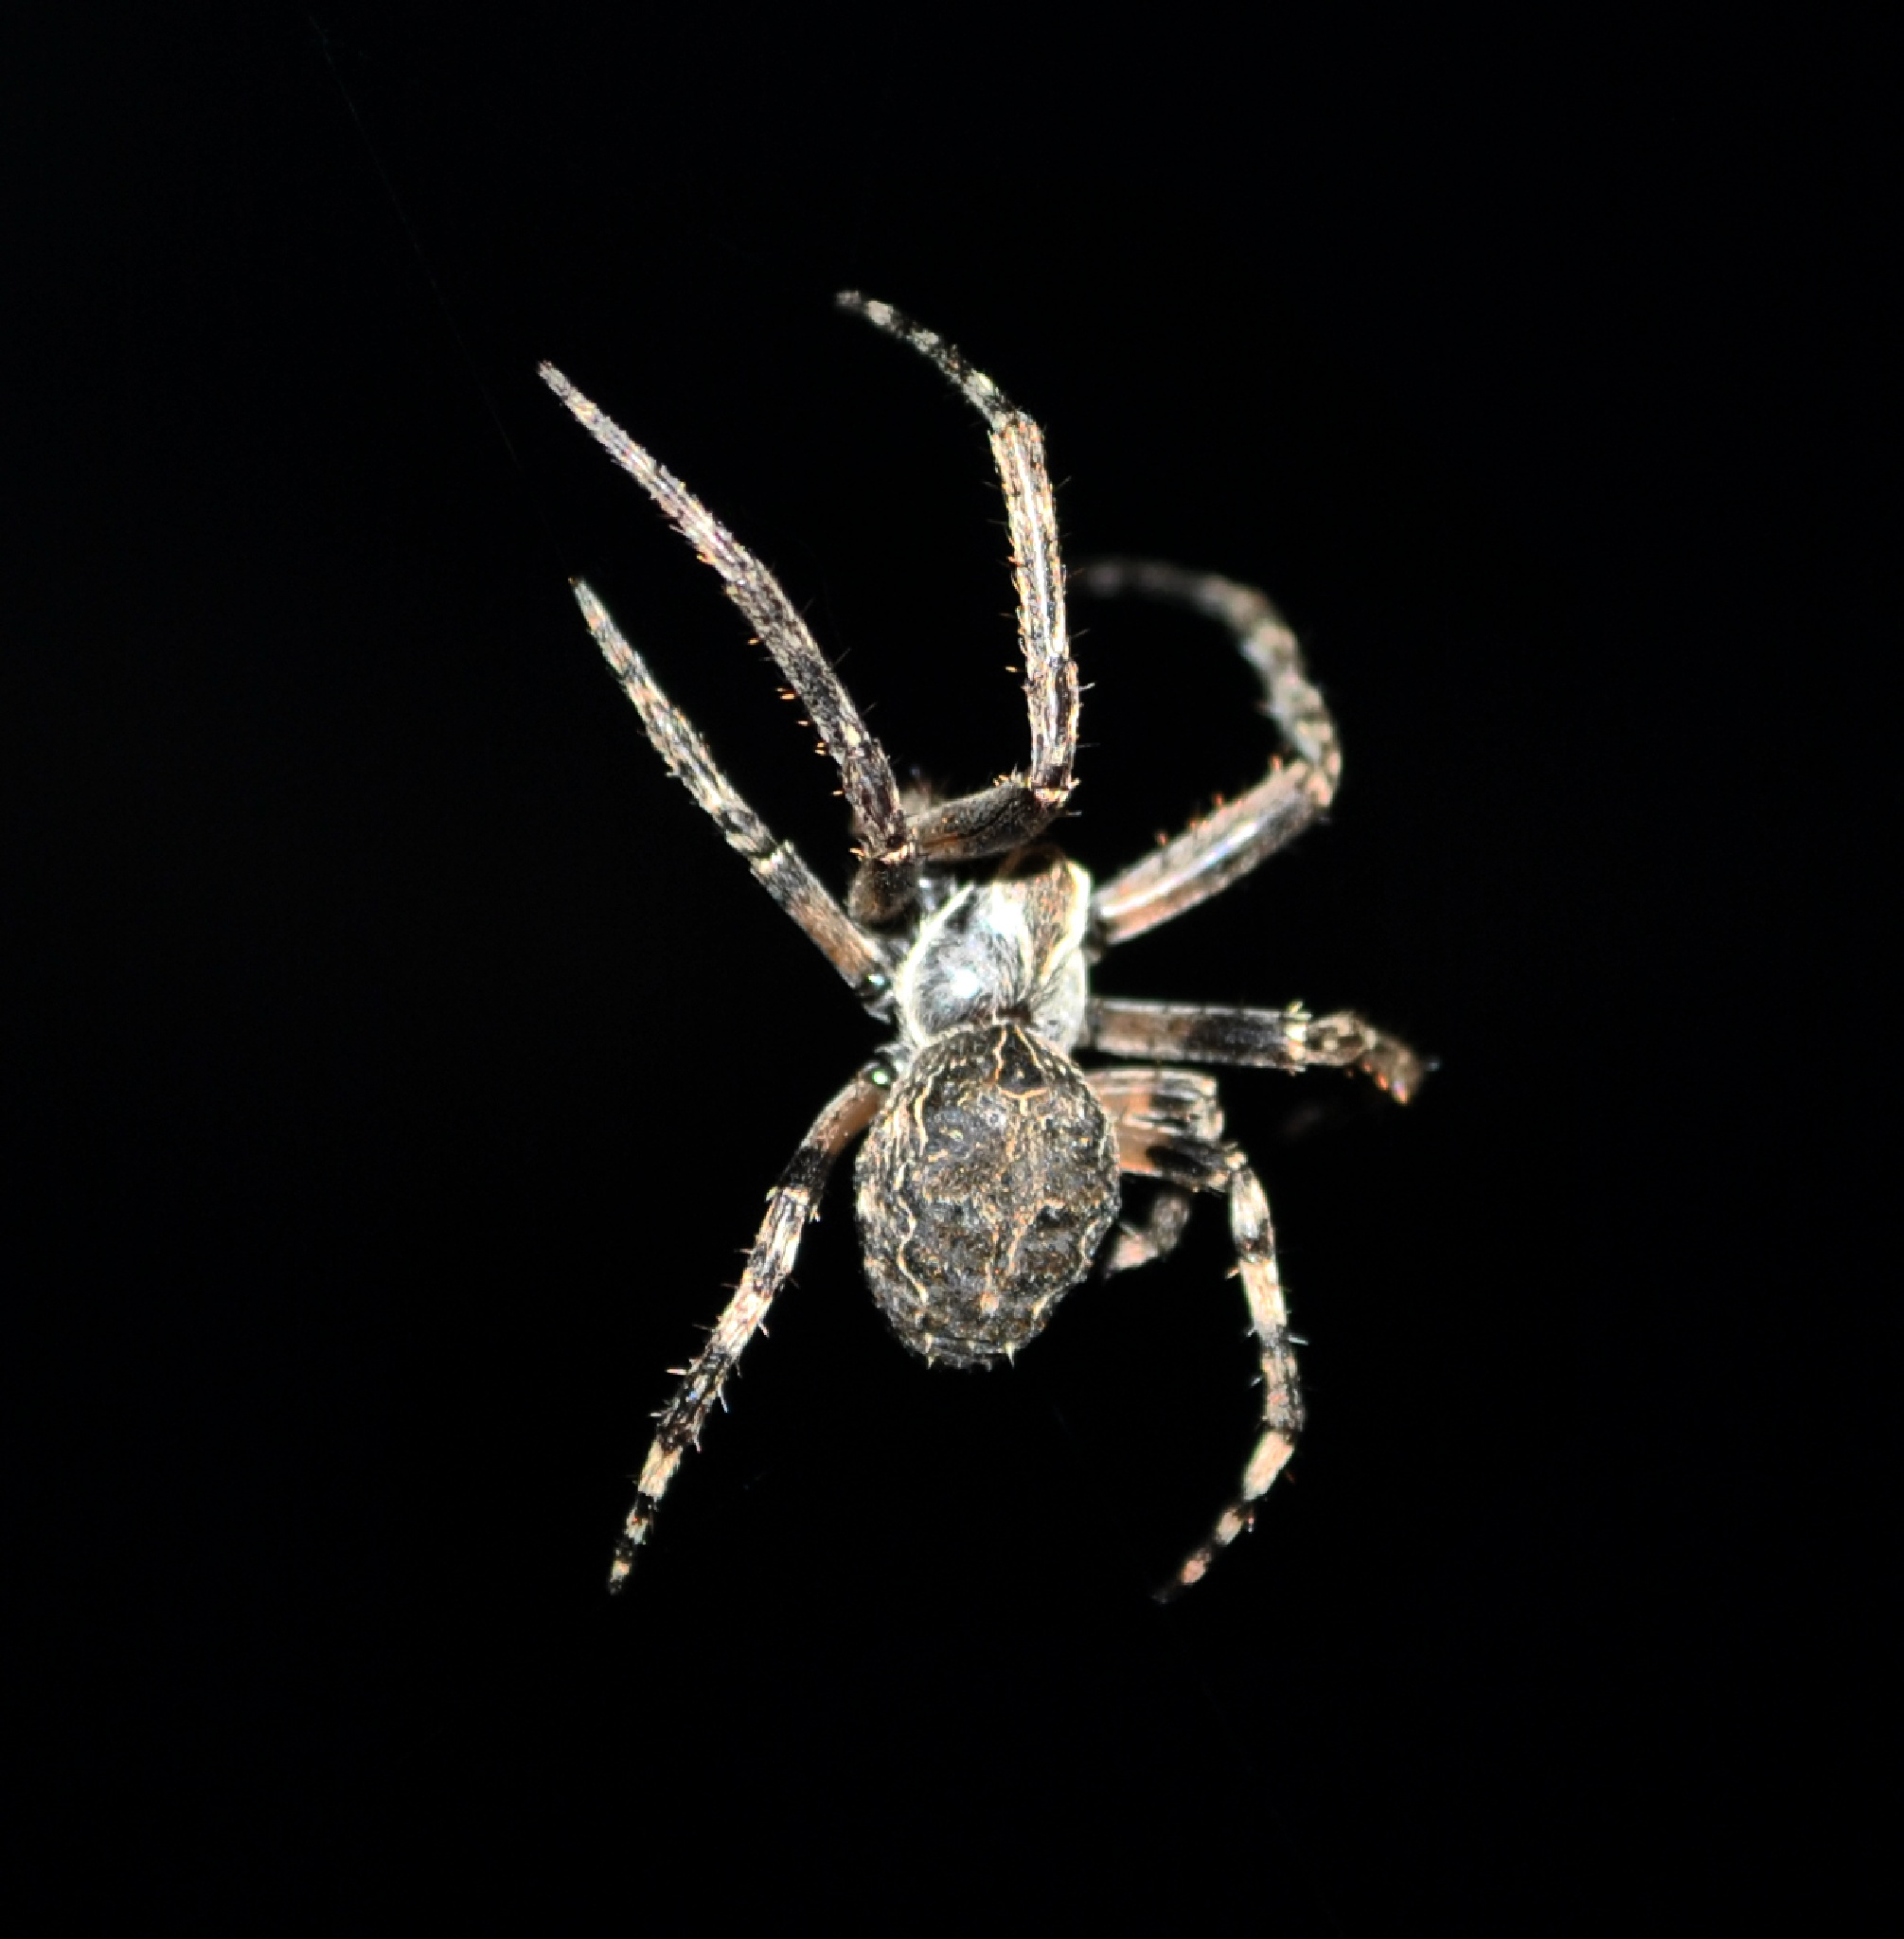 Berlin Spider  by Jeans Brown Photography / Jens Schwarz